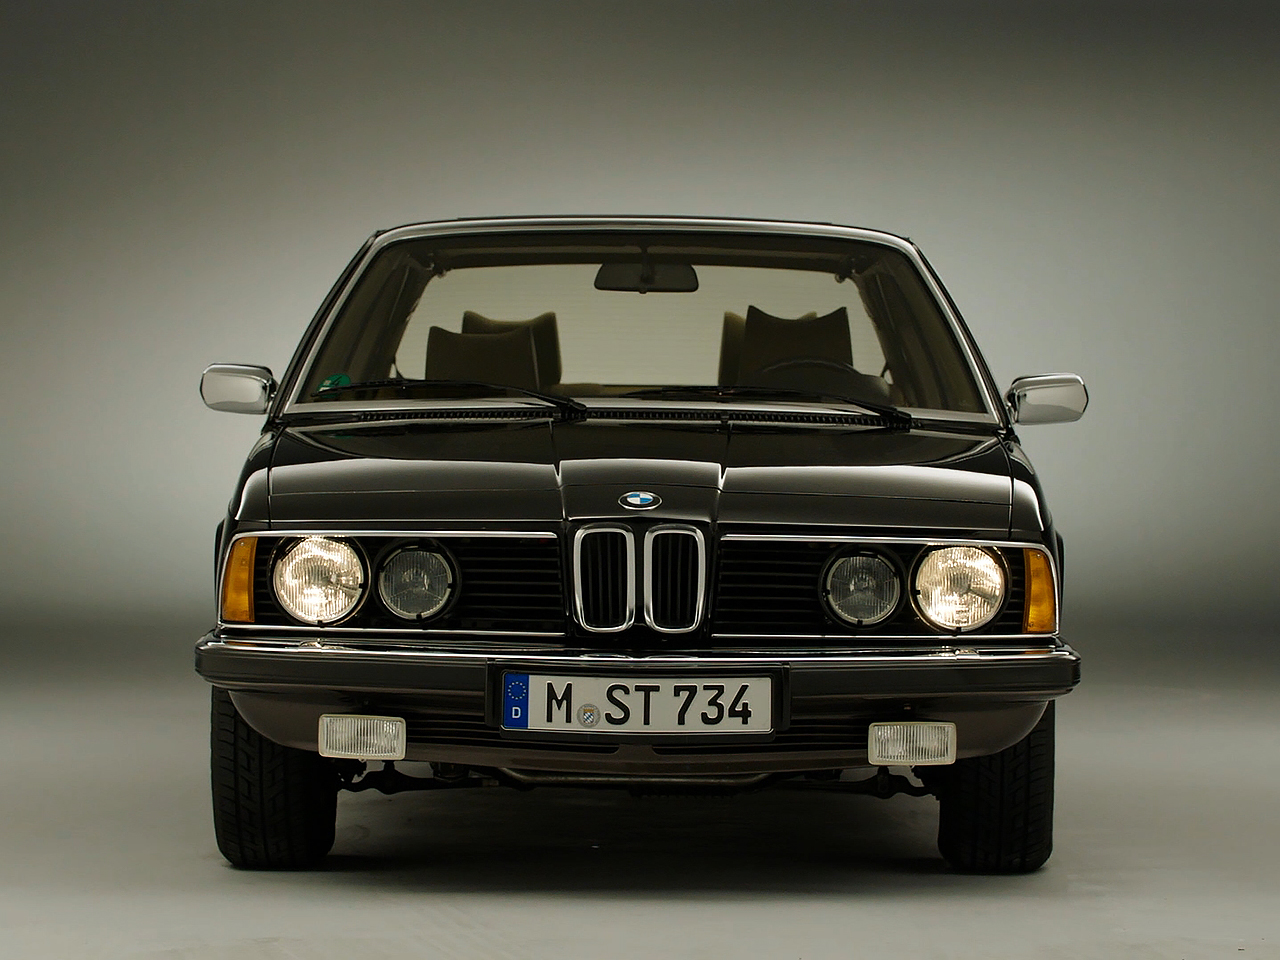 BMW 7 series 733i 1977 photo - 11